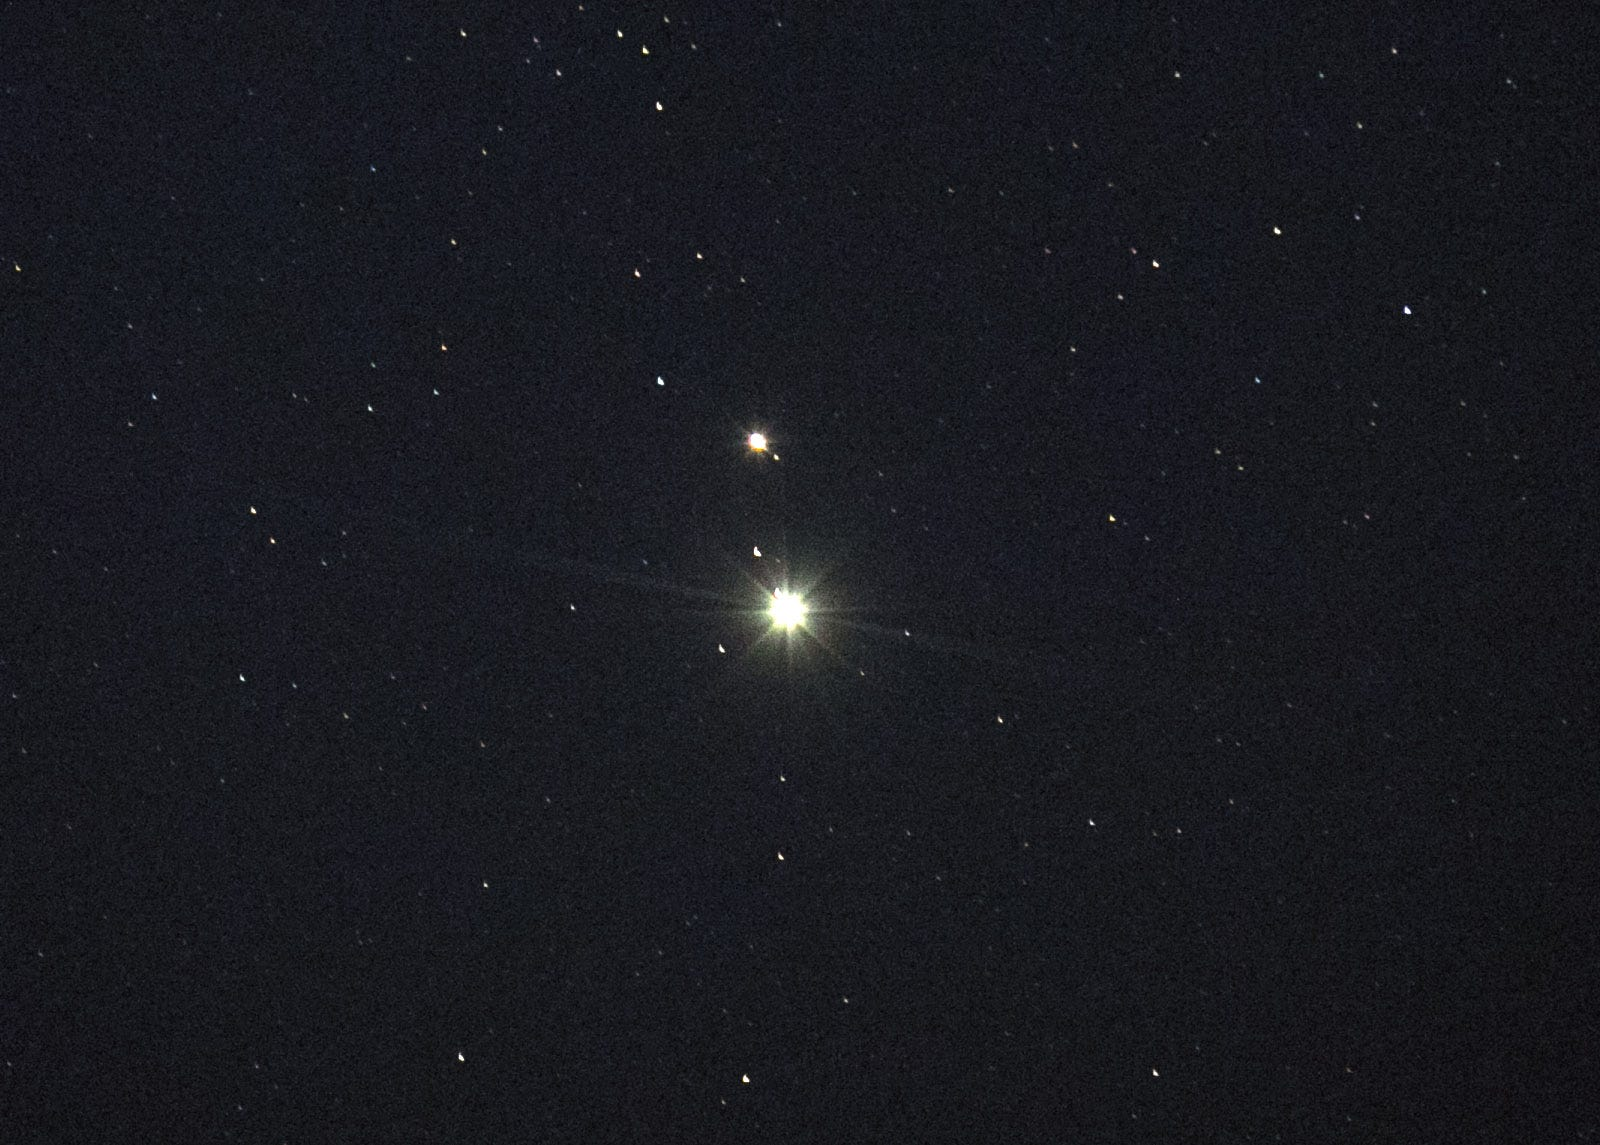 How to see the star of Bethlehem over Arizona in 2020